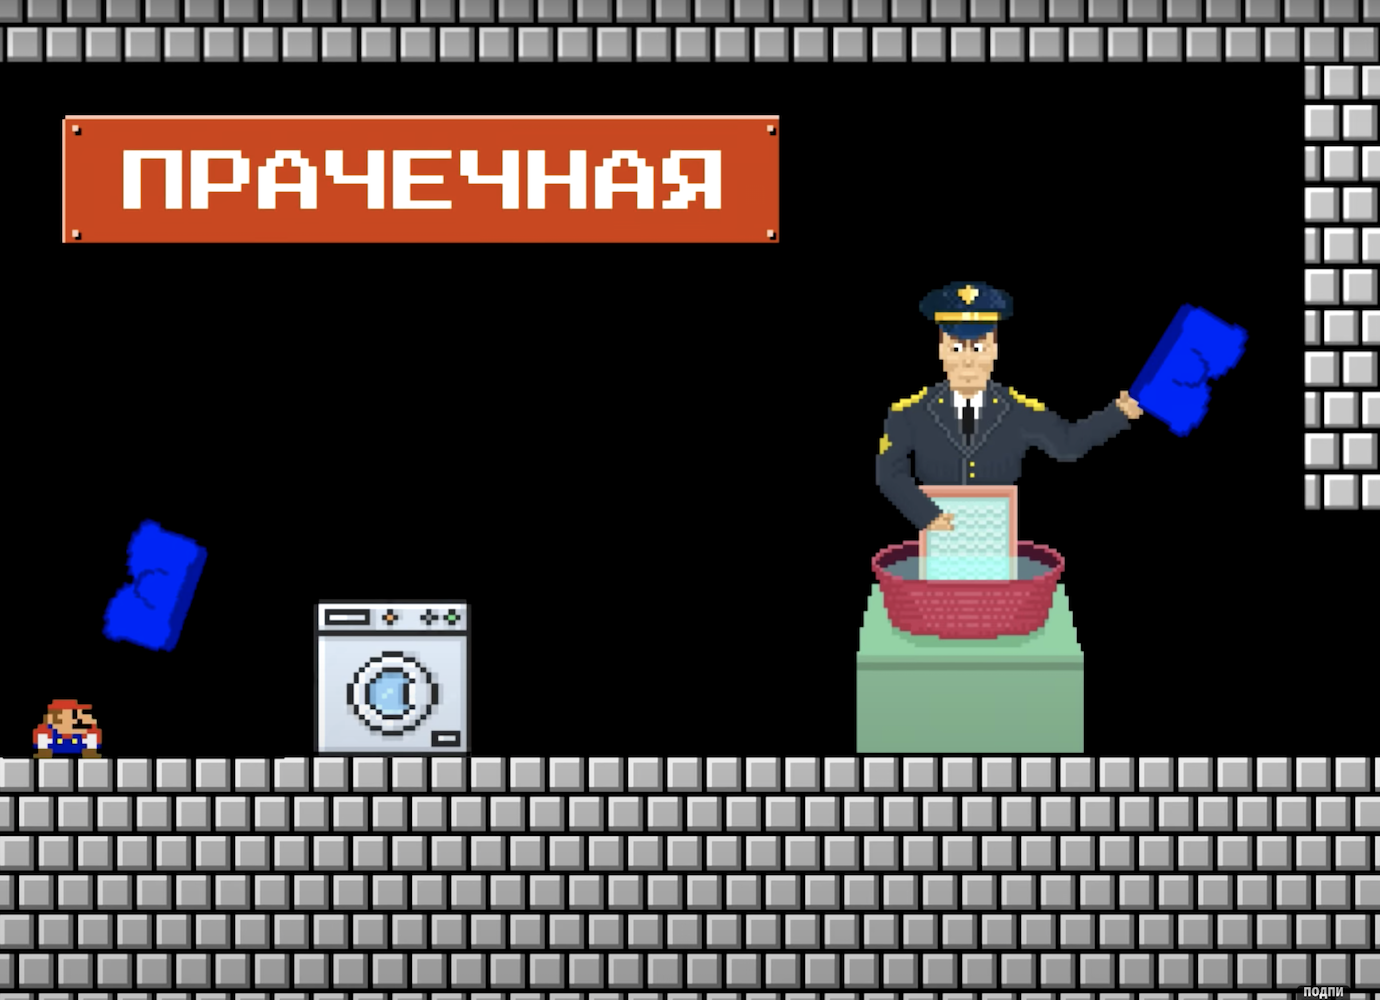 8-Bit revolution: Super Mario walks in on Russia's latest political scandal